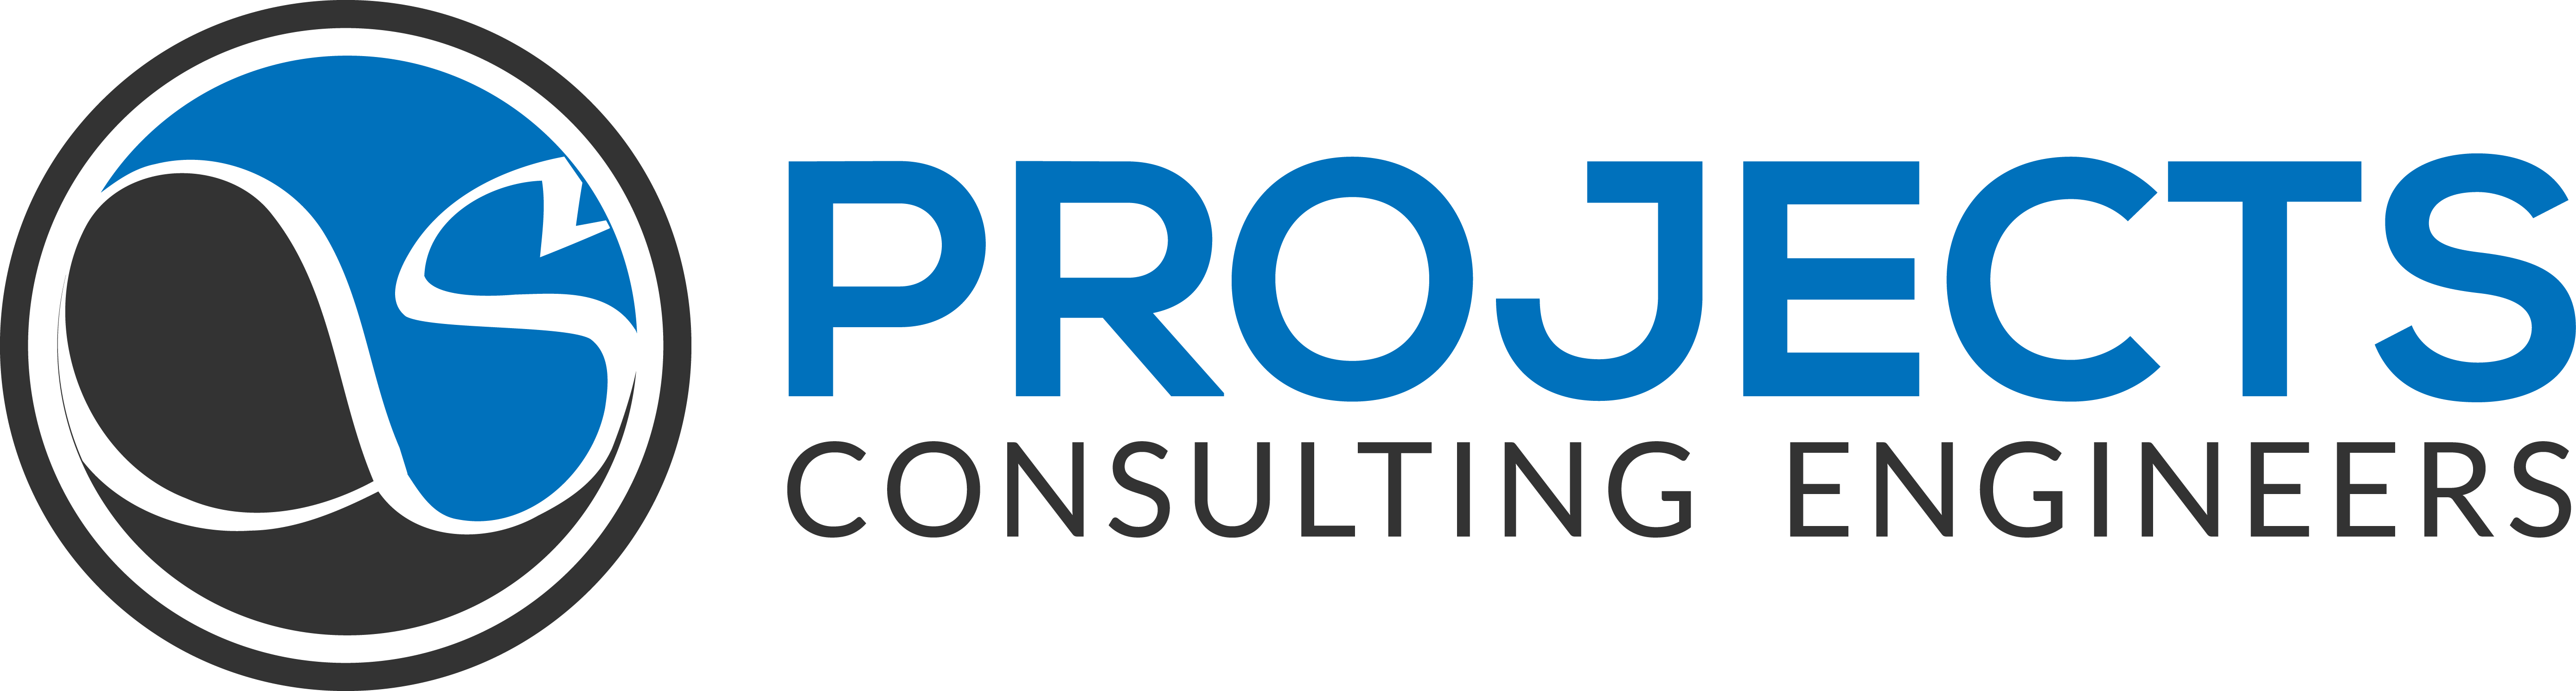 S Projects Consulting